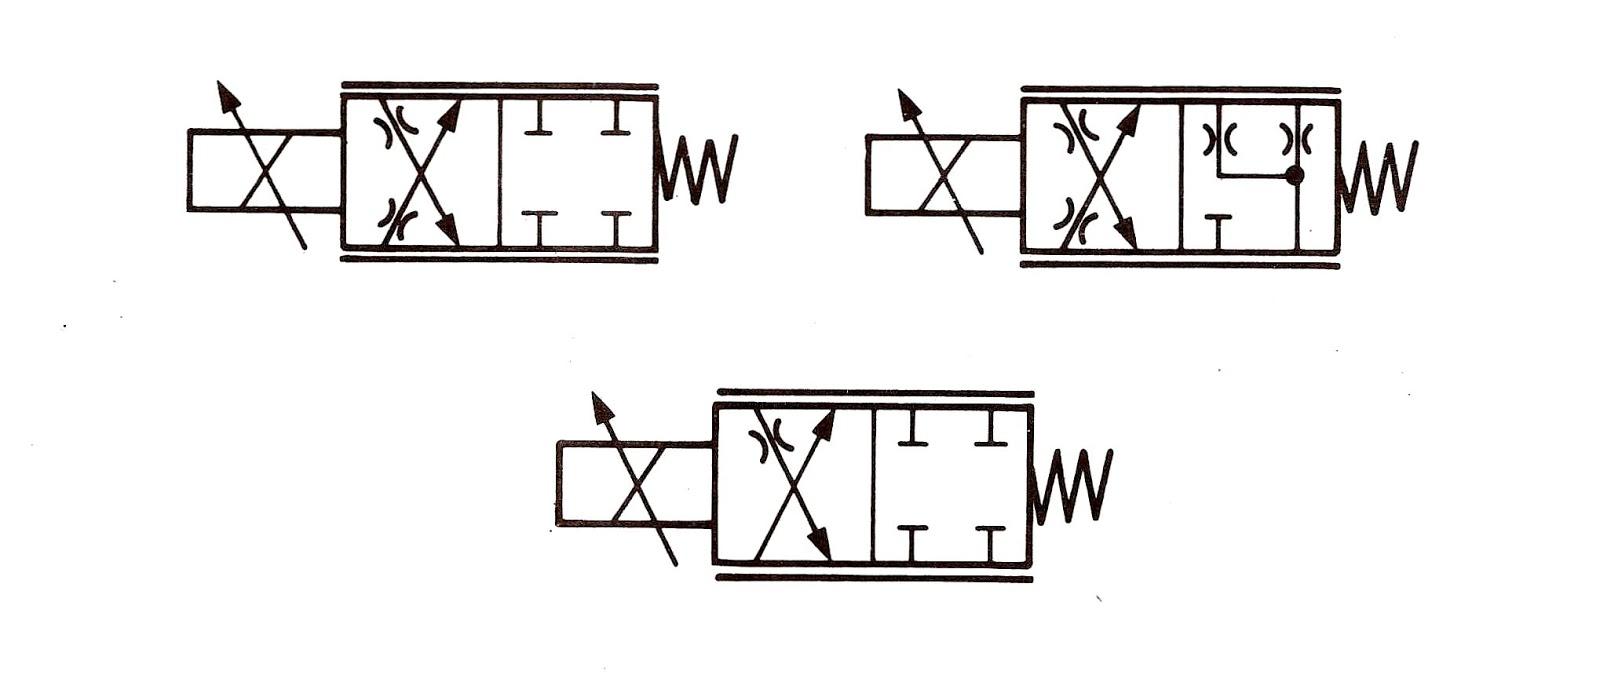 Mariners repository hydraulics 3 flow control the forces acting on the spool during operation by virtue of flow through metered notches produces additional force due to bernoulis effect biocorpaavc Choice Image